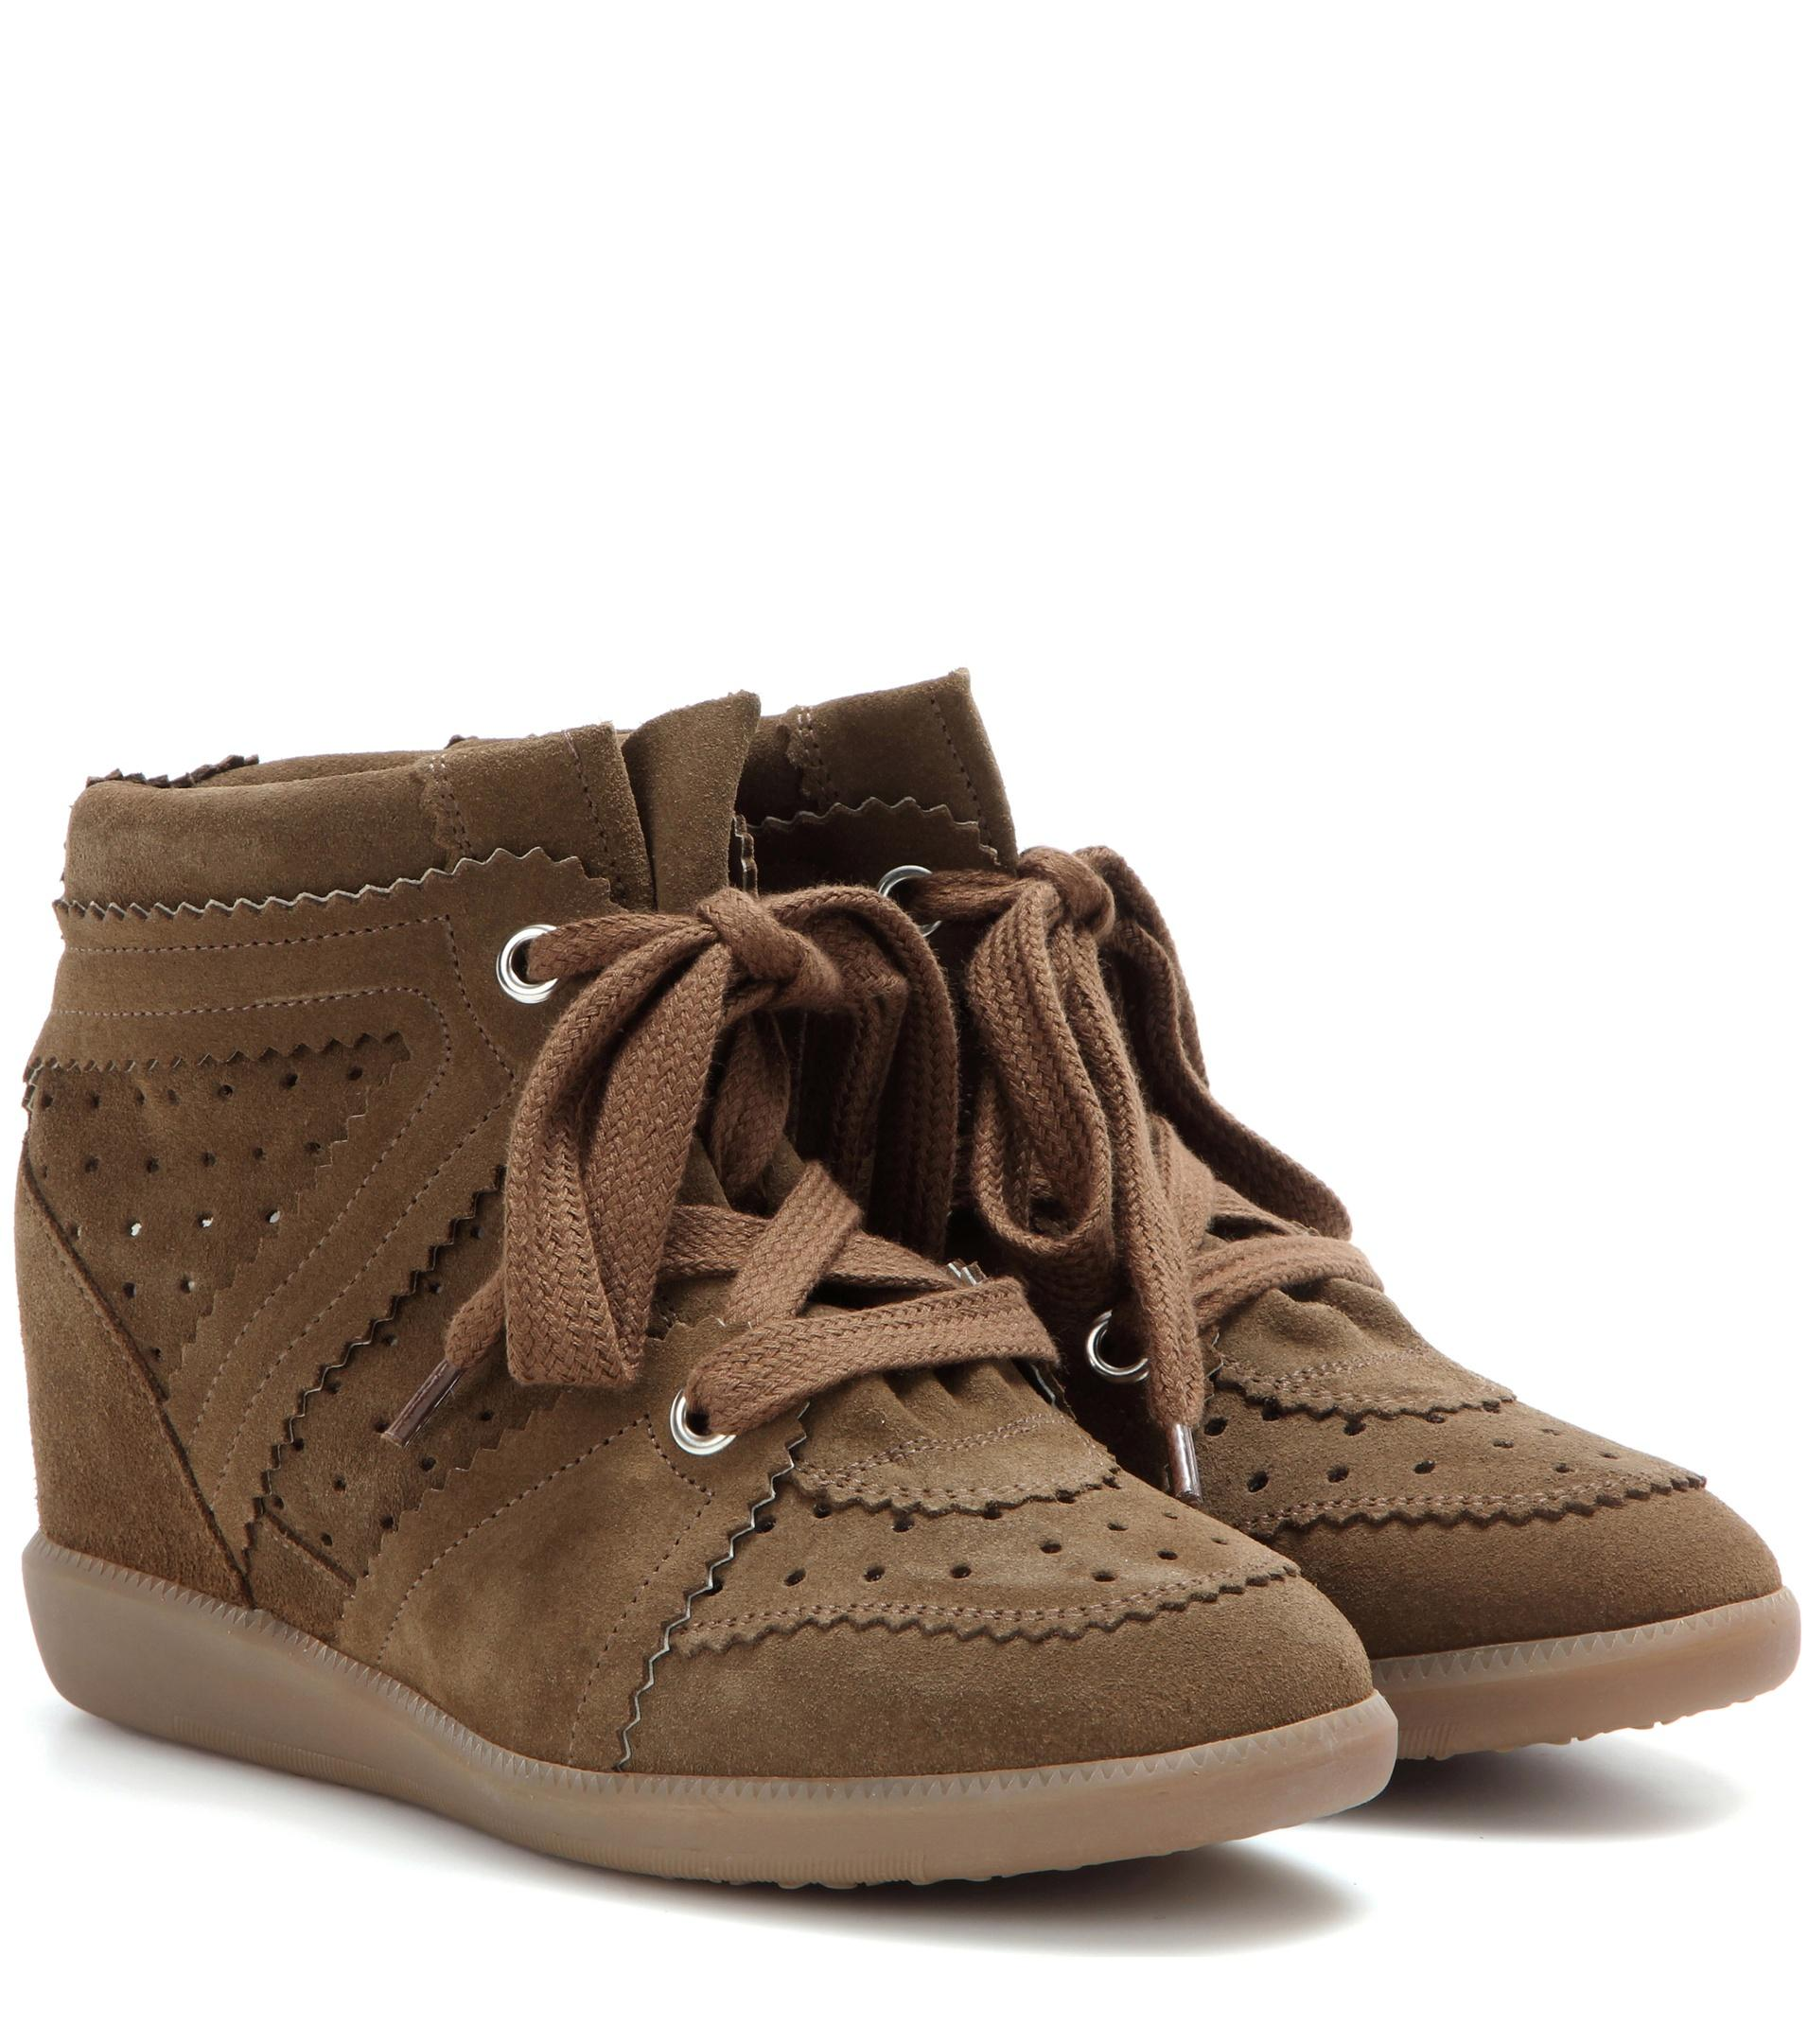 isabel marant toile bobby suede wedge sneakers in brown lyst. Black Bedroom Furniture Sets. Home Design Ideas